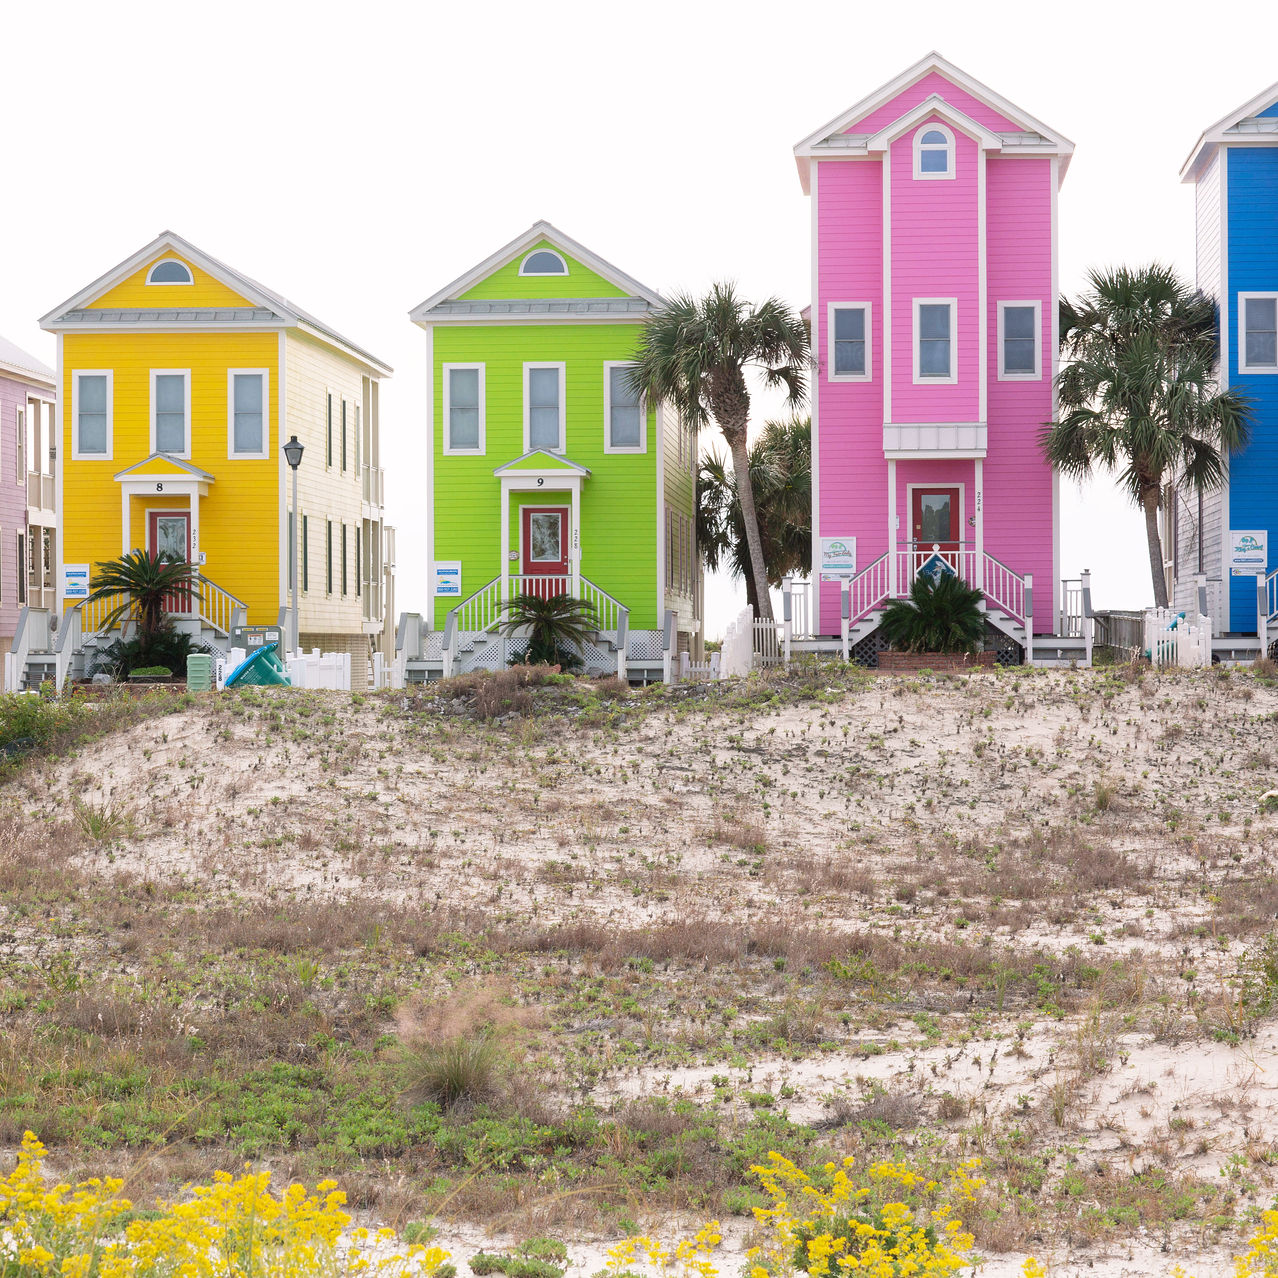 Seaside homes on the barrier Island Saint George, 4 miles offshore from Apalachicola.